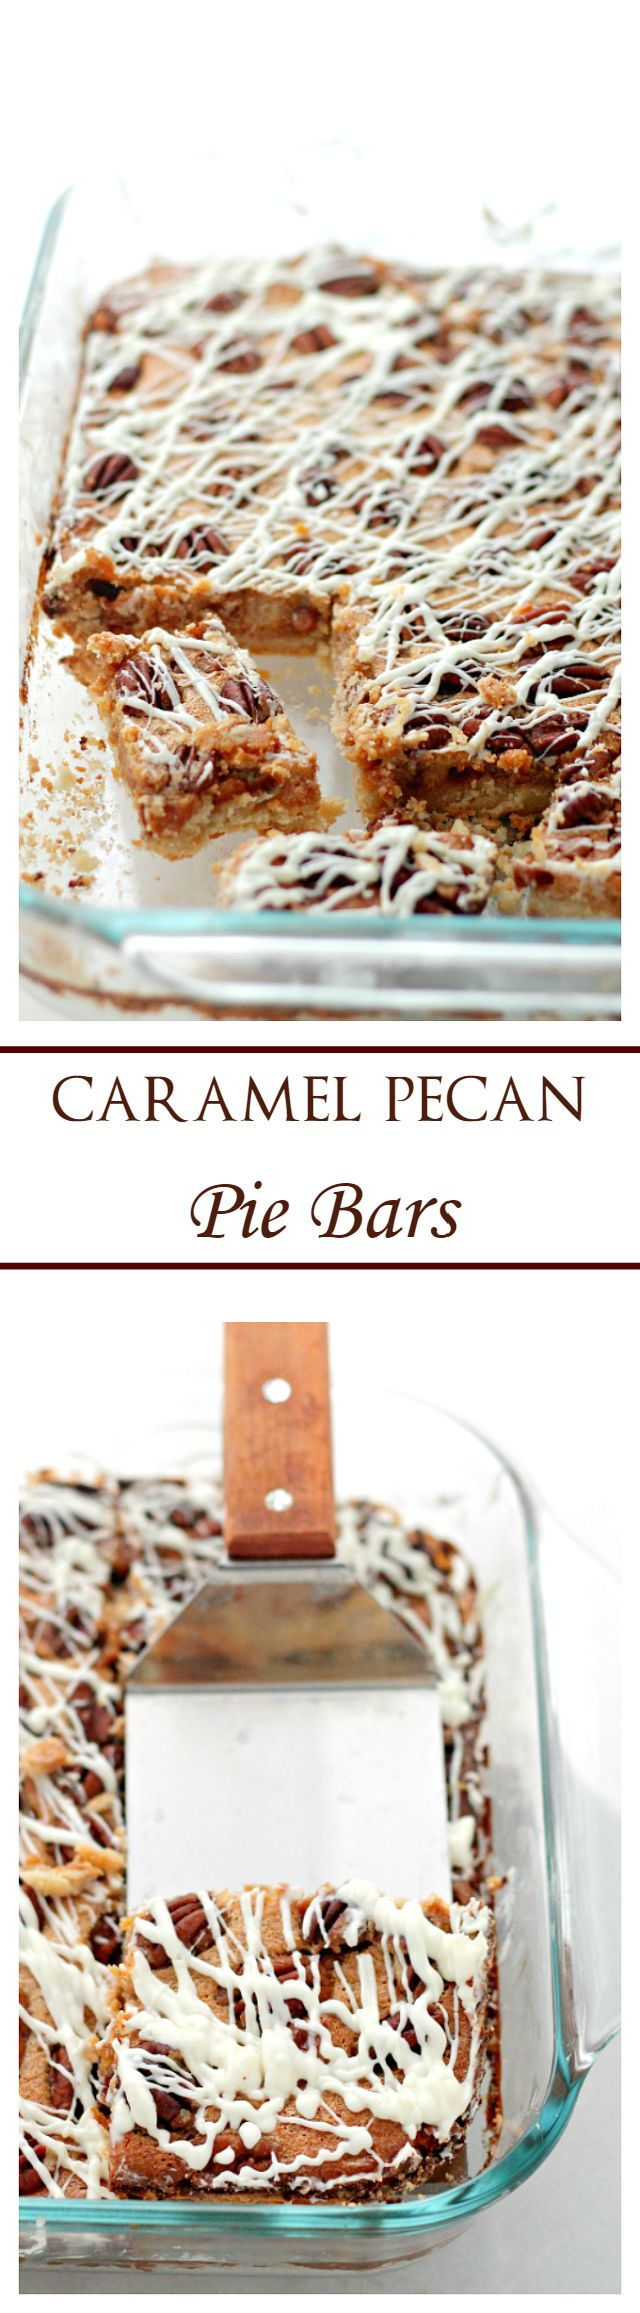 out Caramel Pecan Pie Bars. It's so easy to make! | Pecan pie bars ...